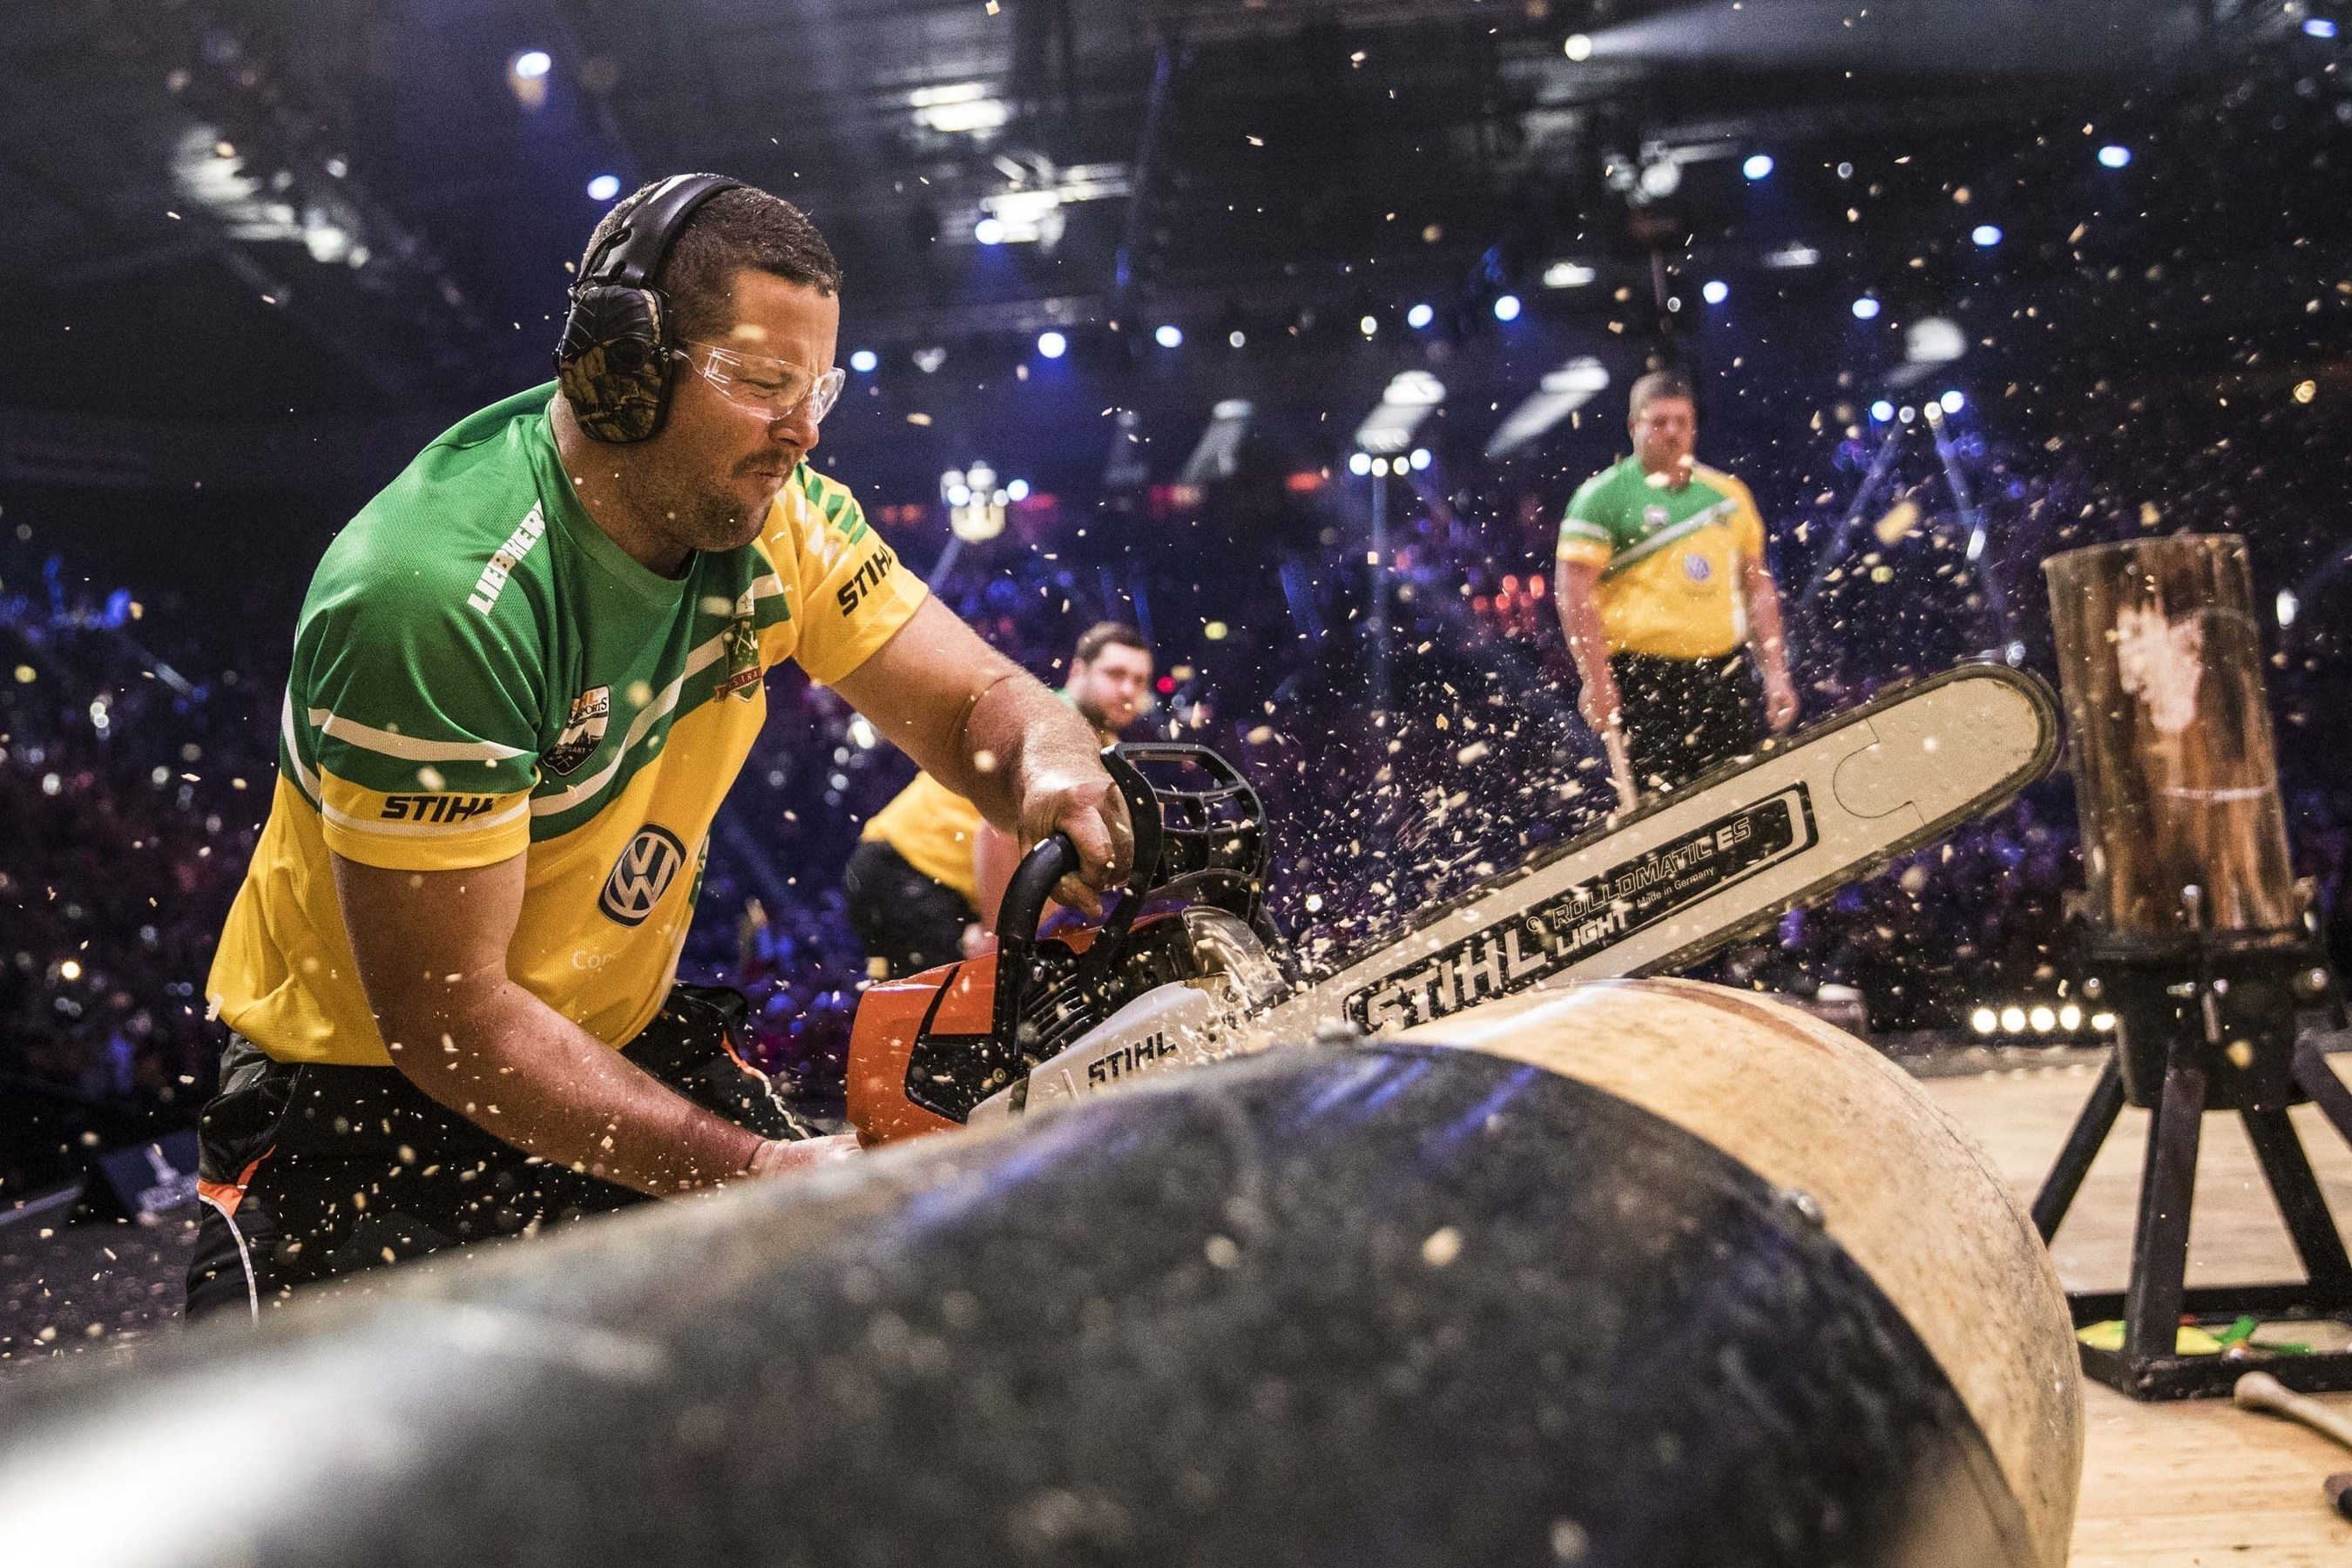 Already the day before the team race was on: Team Australia took a mere 46.45 seconds to demolish four big logs with the axe and saw, thus establishing a new world record. Hence, they became the new Team World Champions in the end. (PRNewsFoto/STIHL TIMBERSPORTS Series)